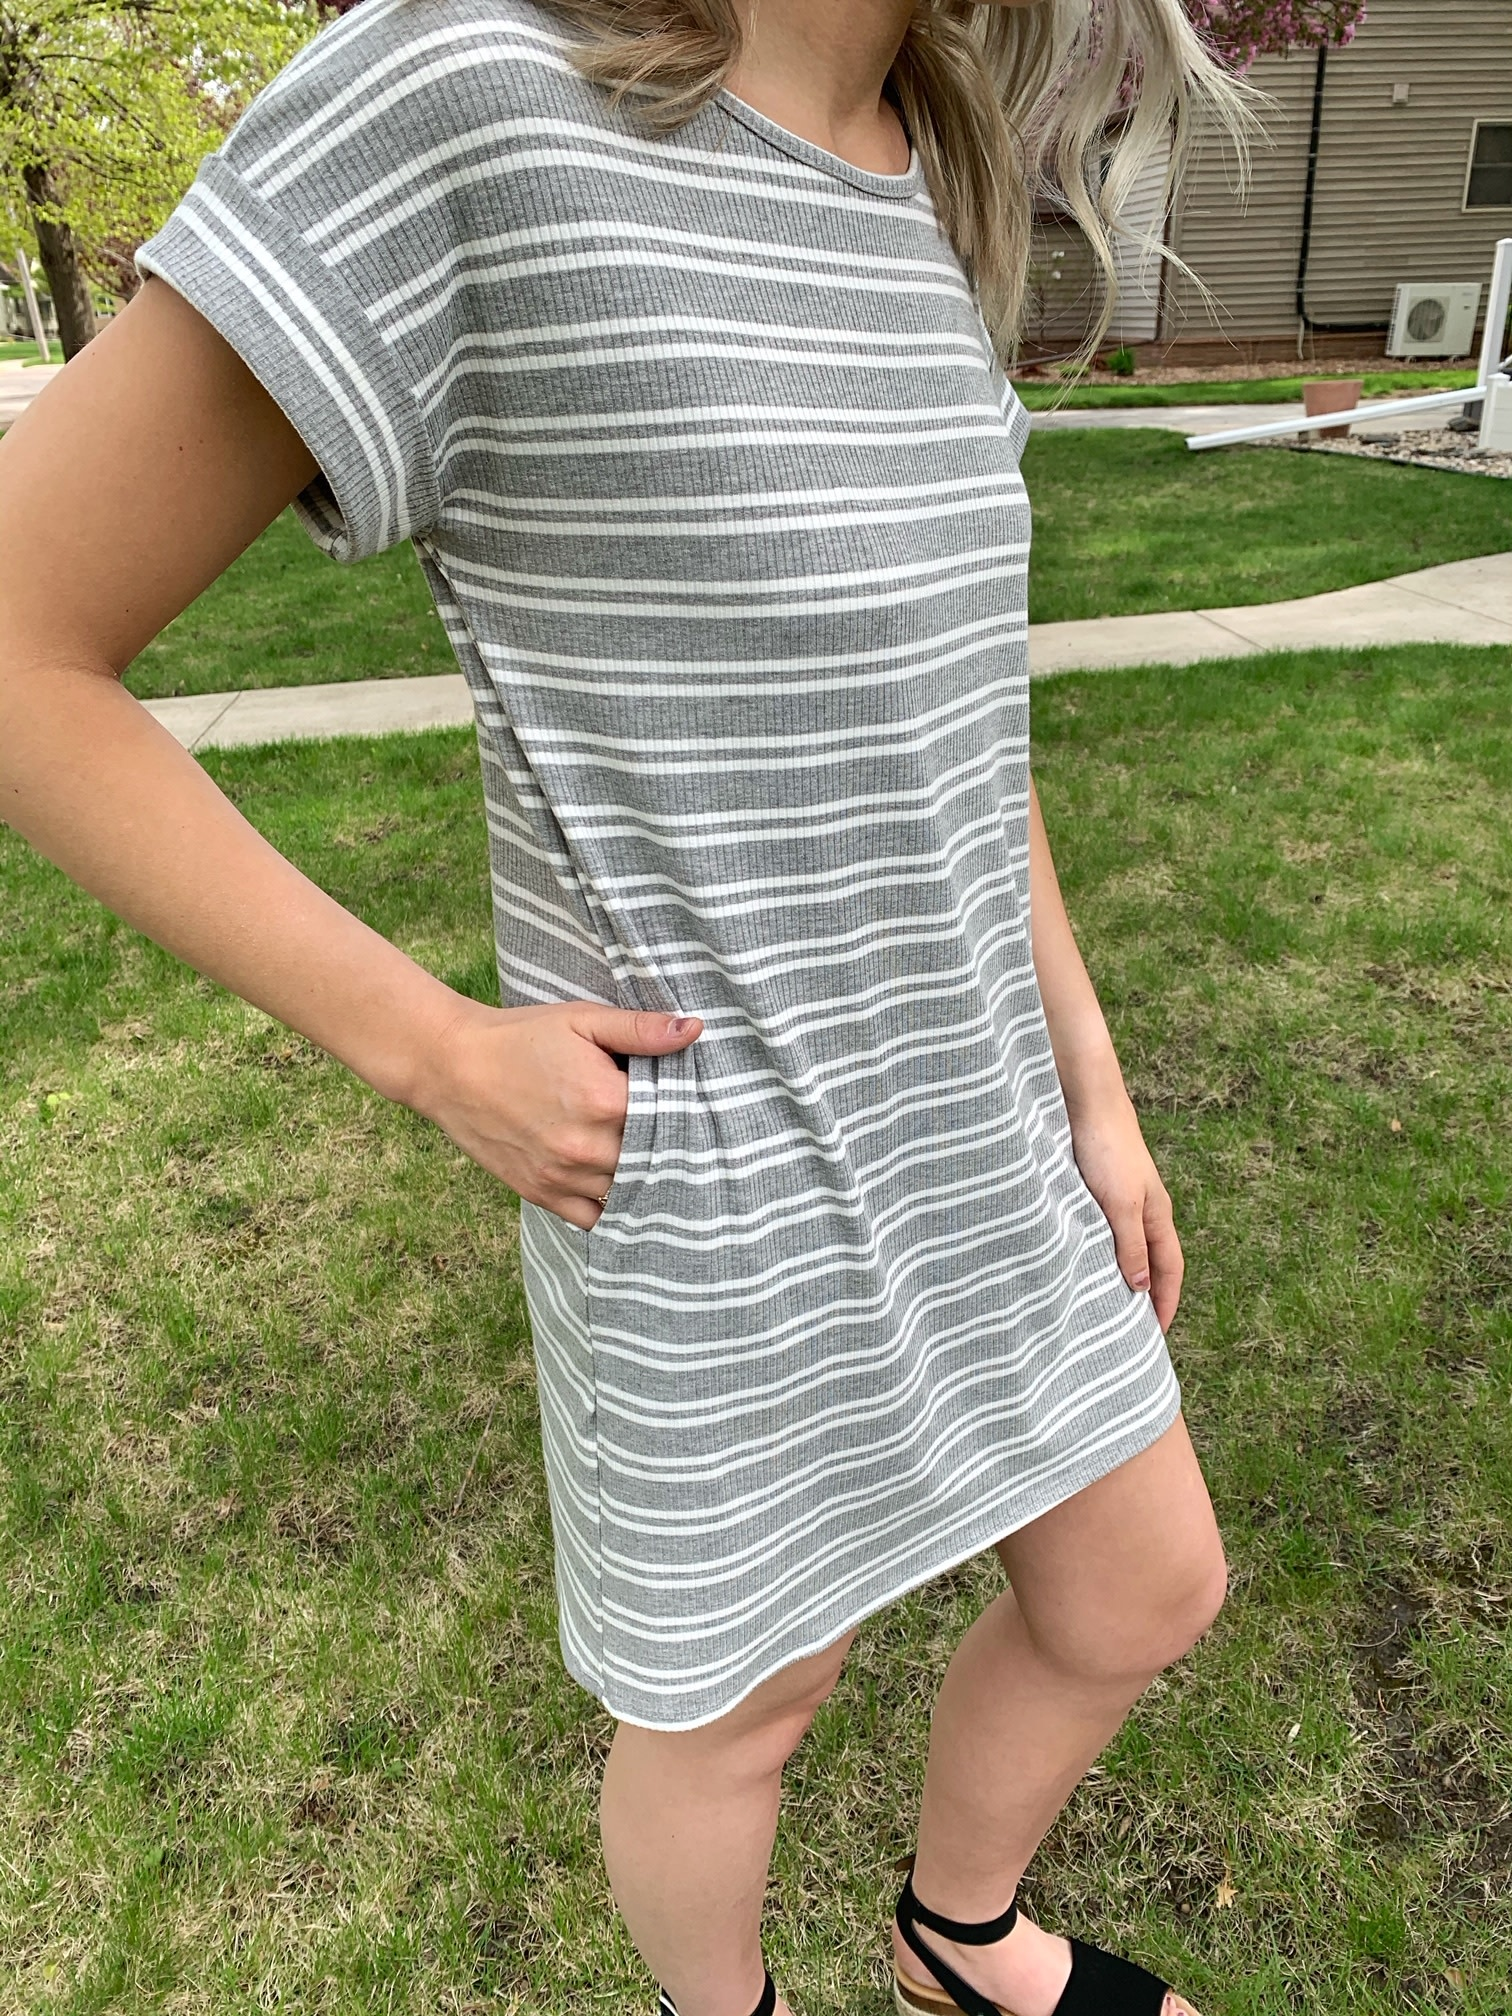 Amanda Striped Dress - Gray